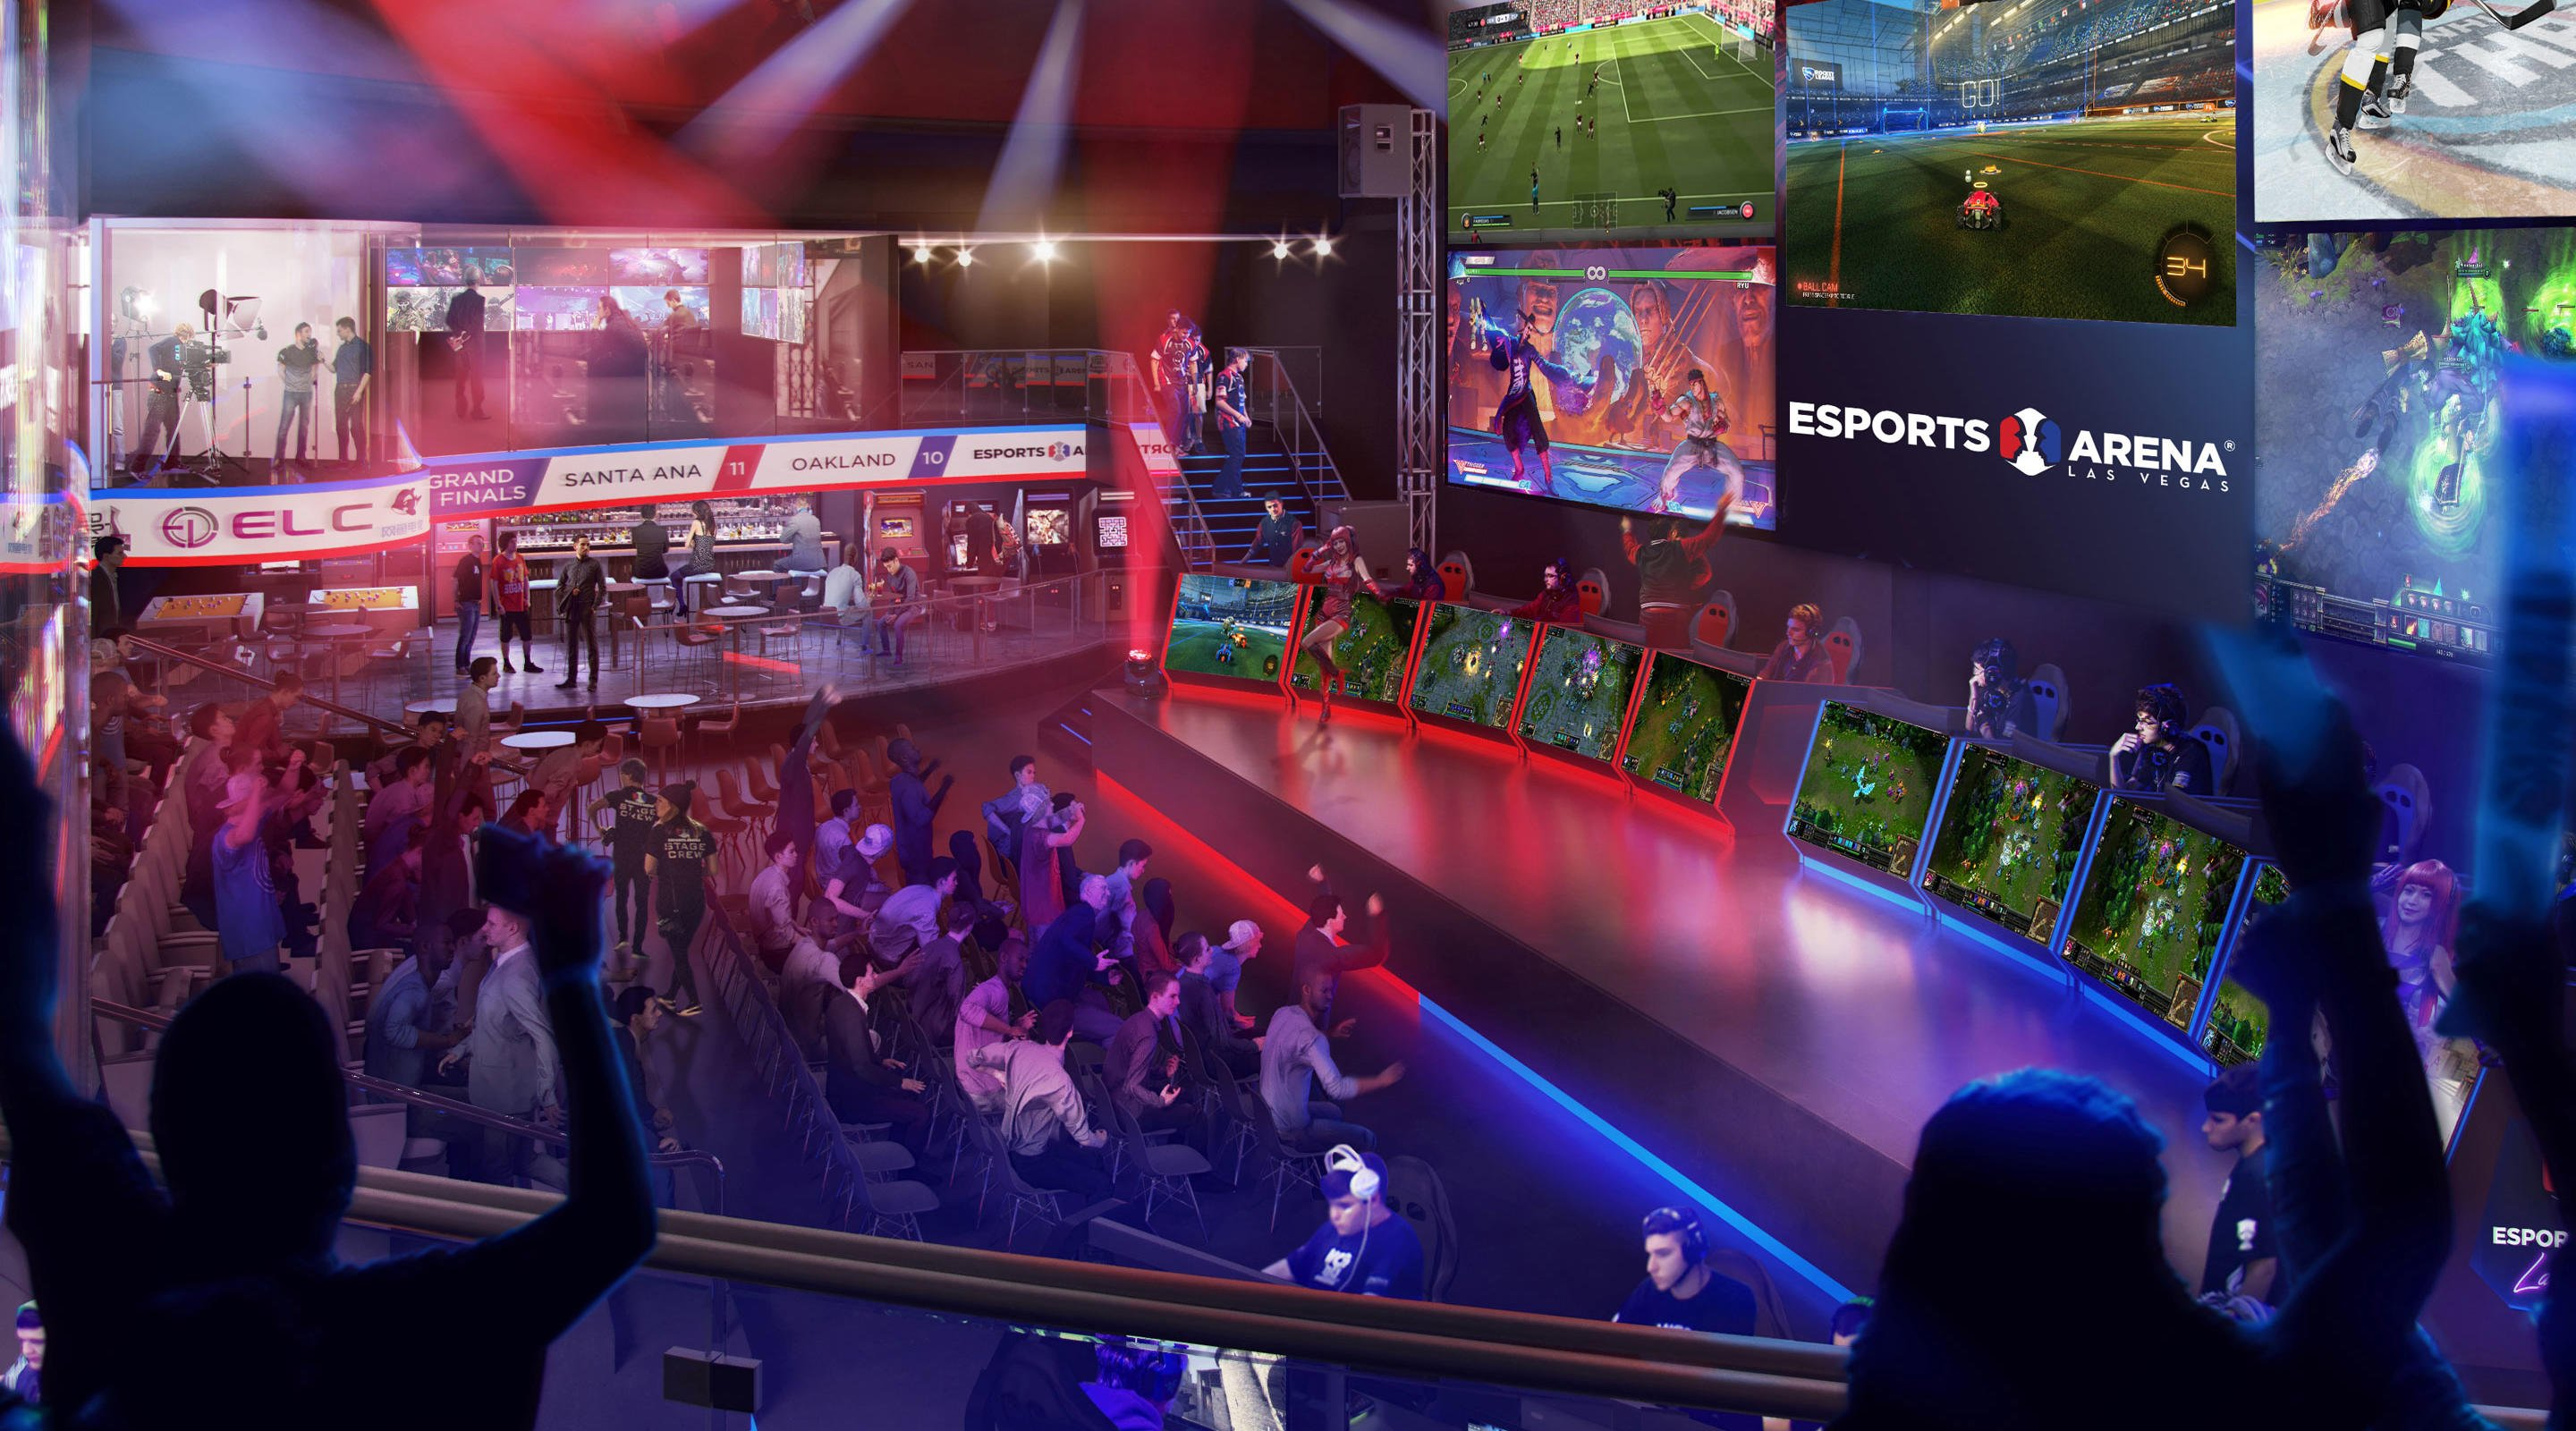 The Esports Arena Las Vegas